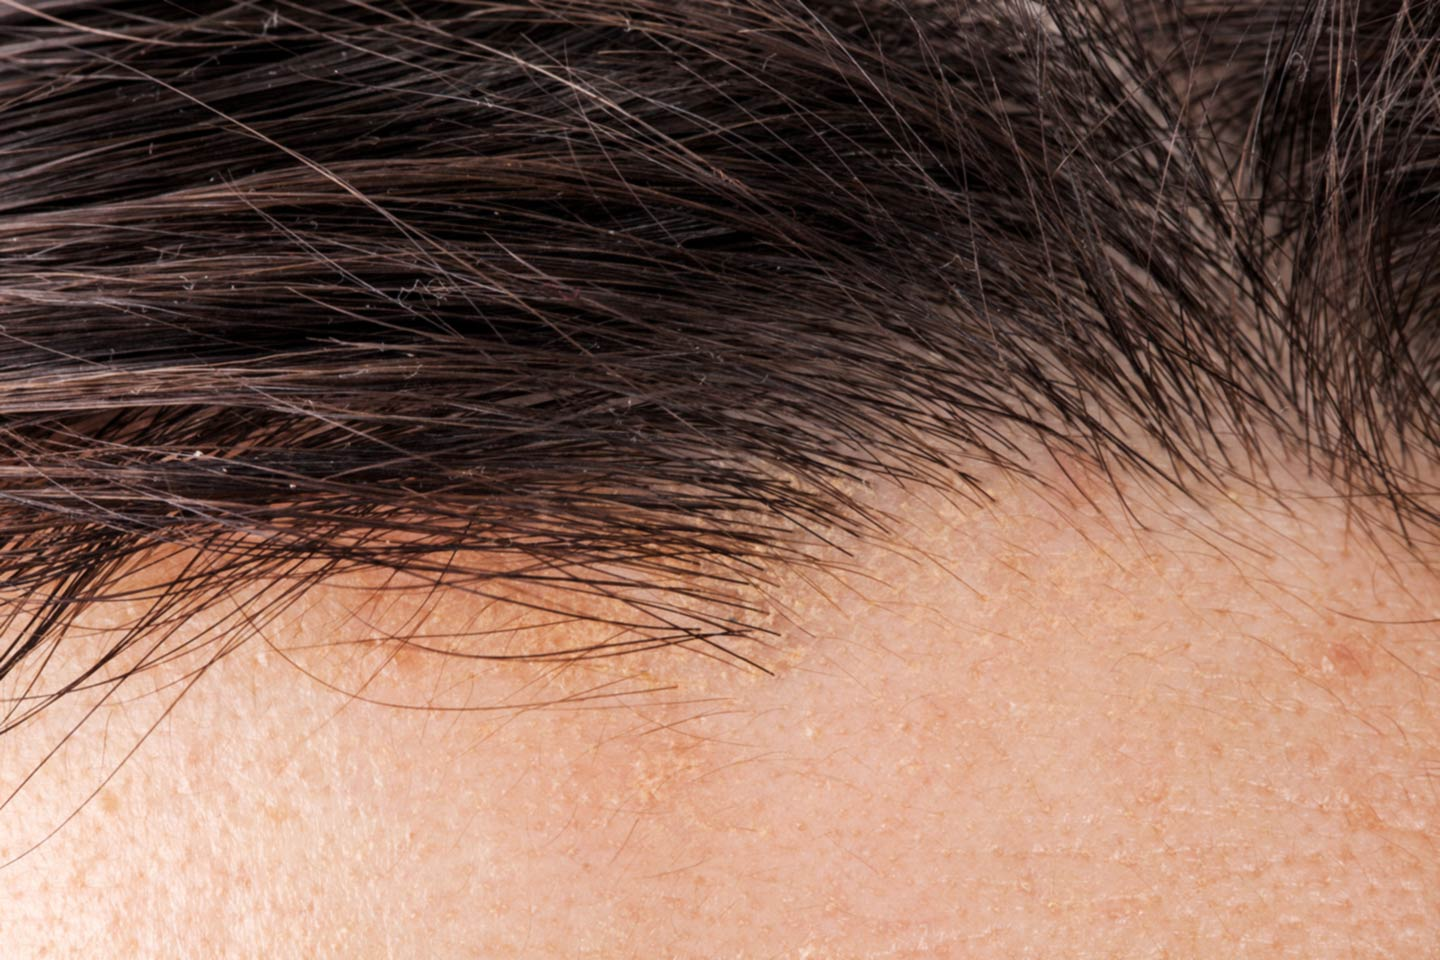 Close-up of a patient's hairline